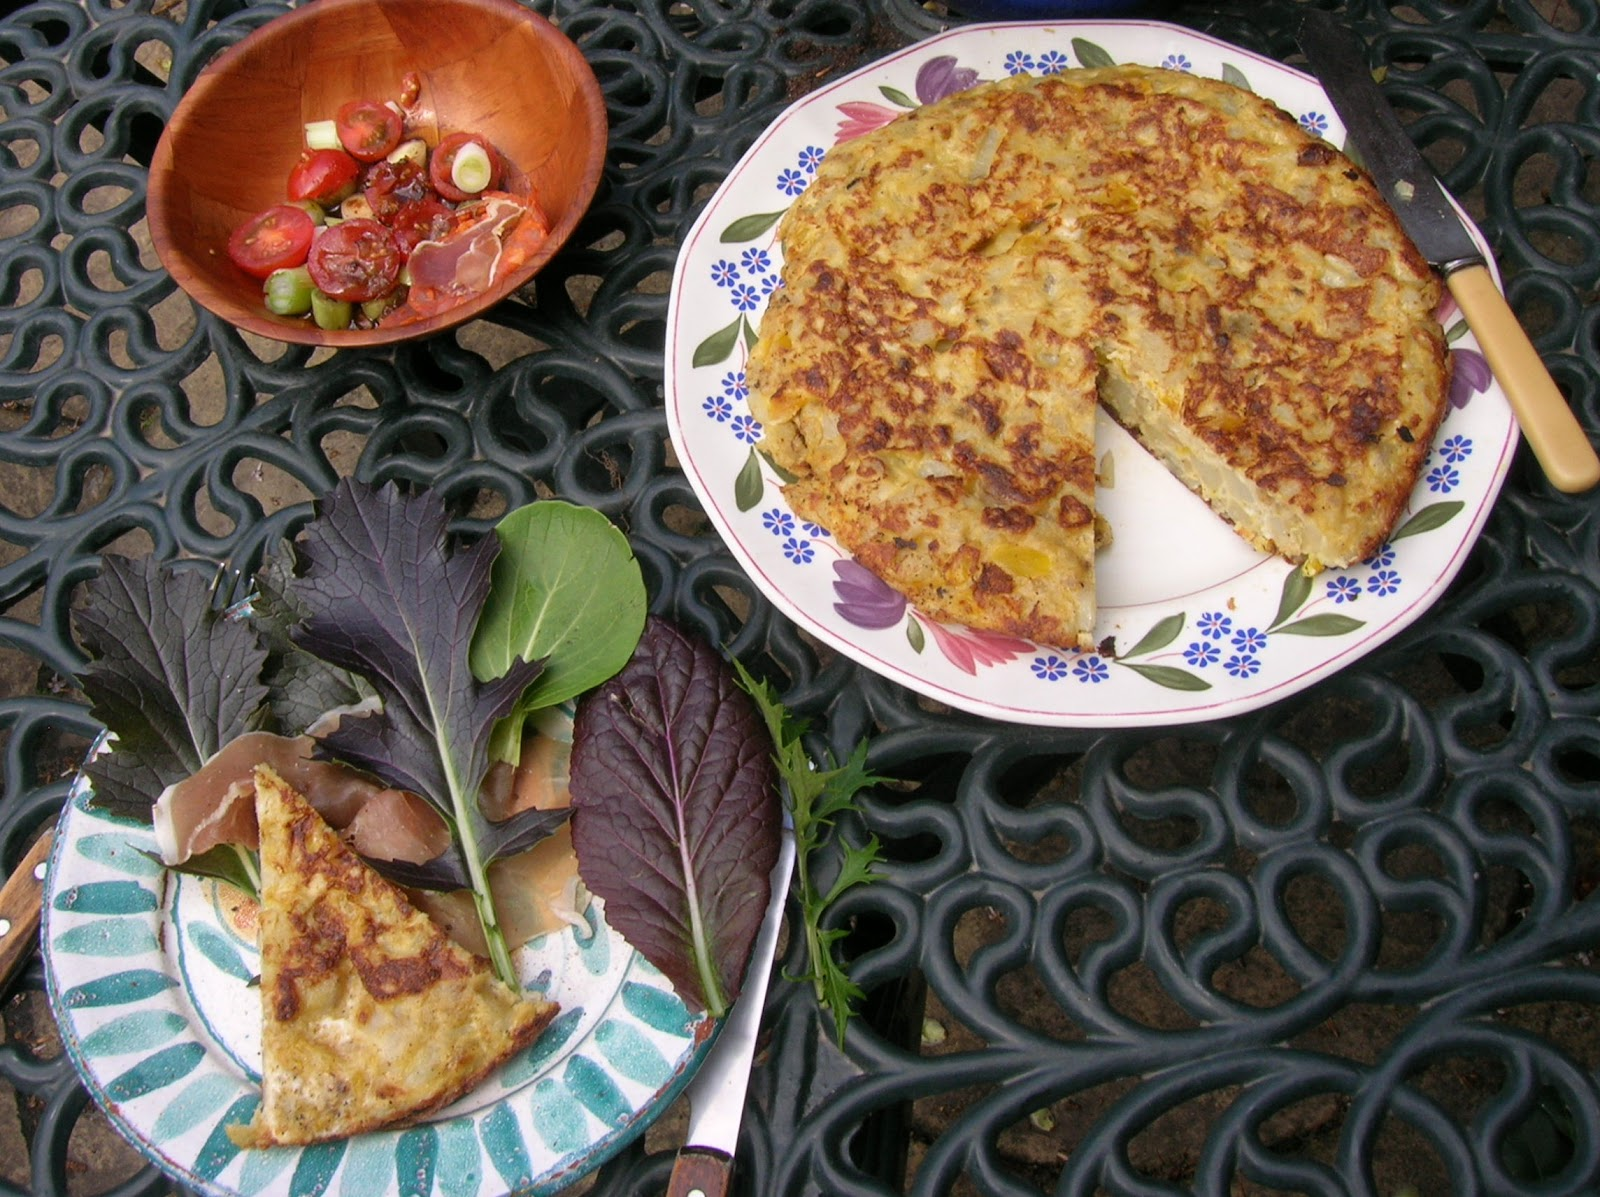 spanish tortilla lunch served on a plate on a garden table. Side salad and chopped tomatoes in a dish beside it.